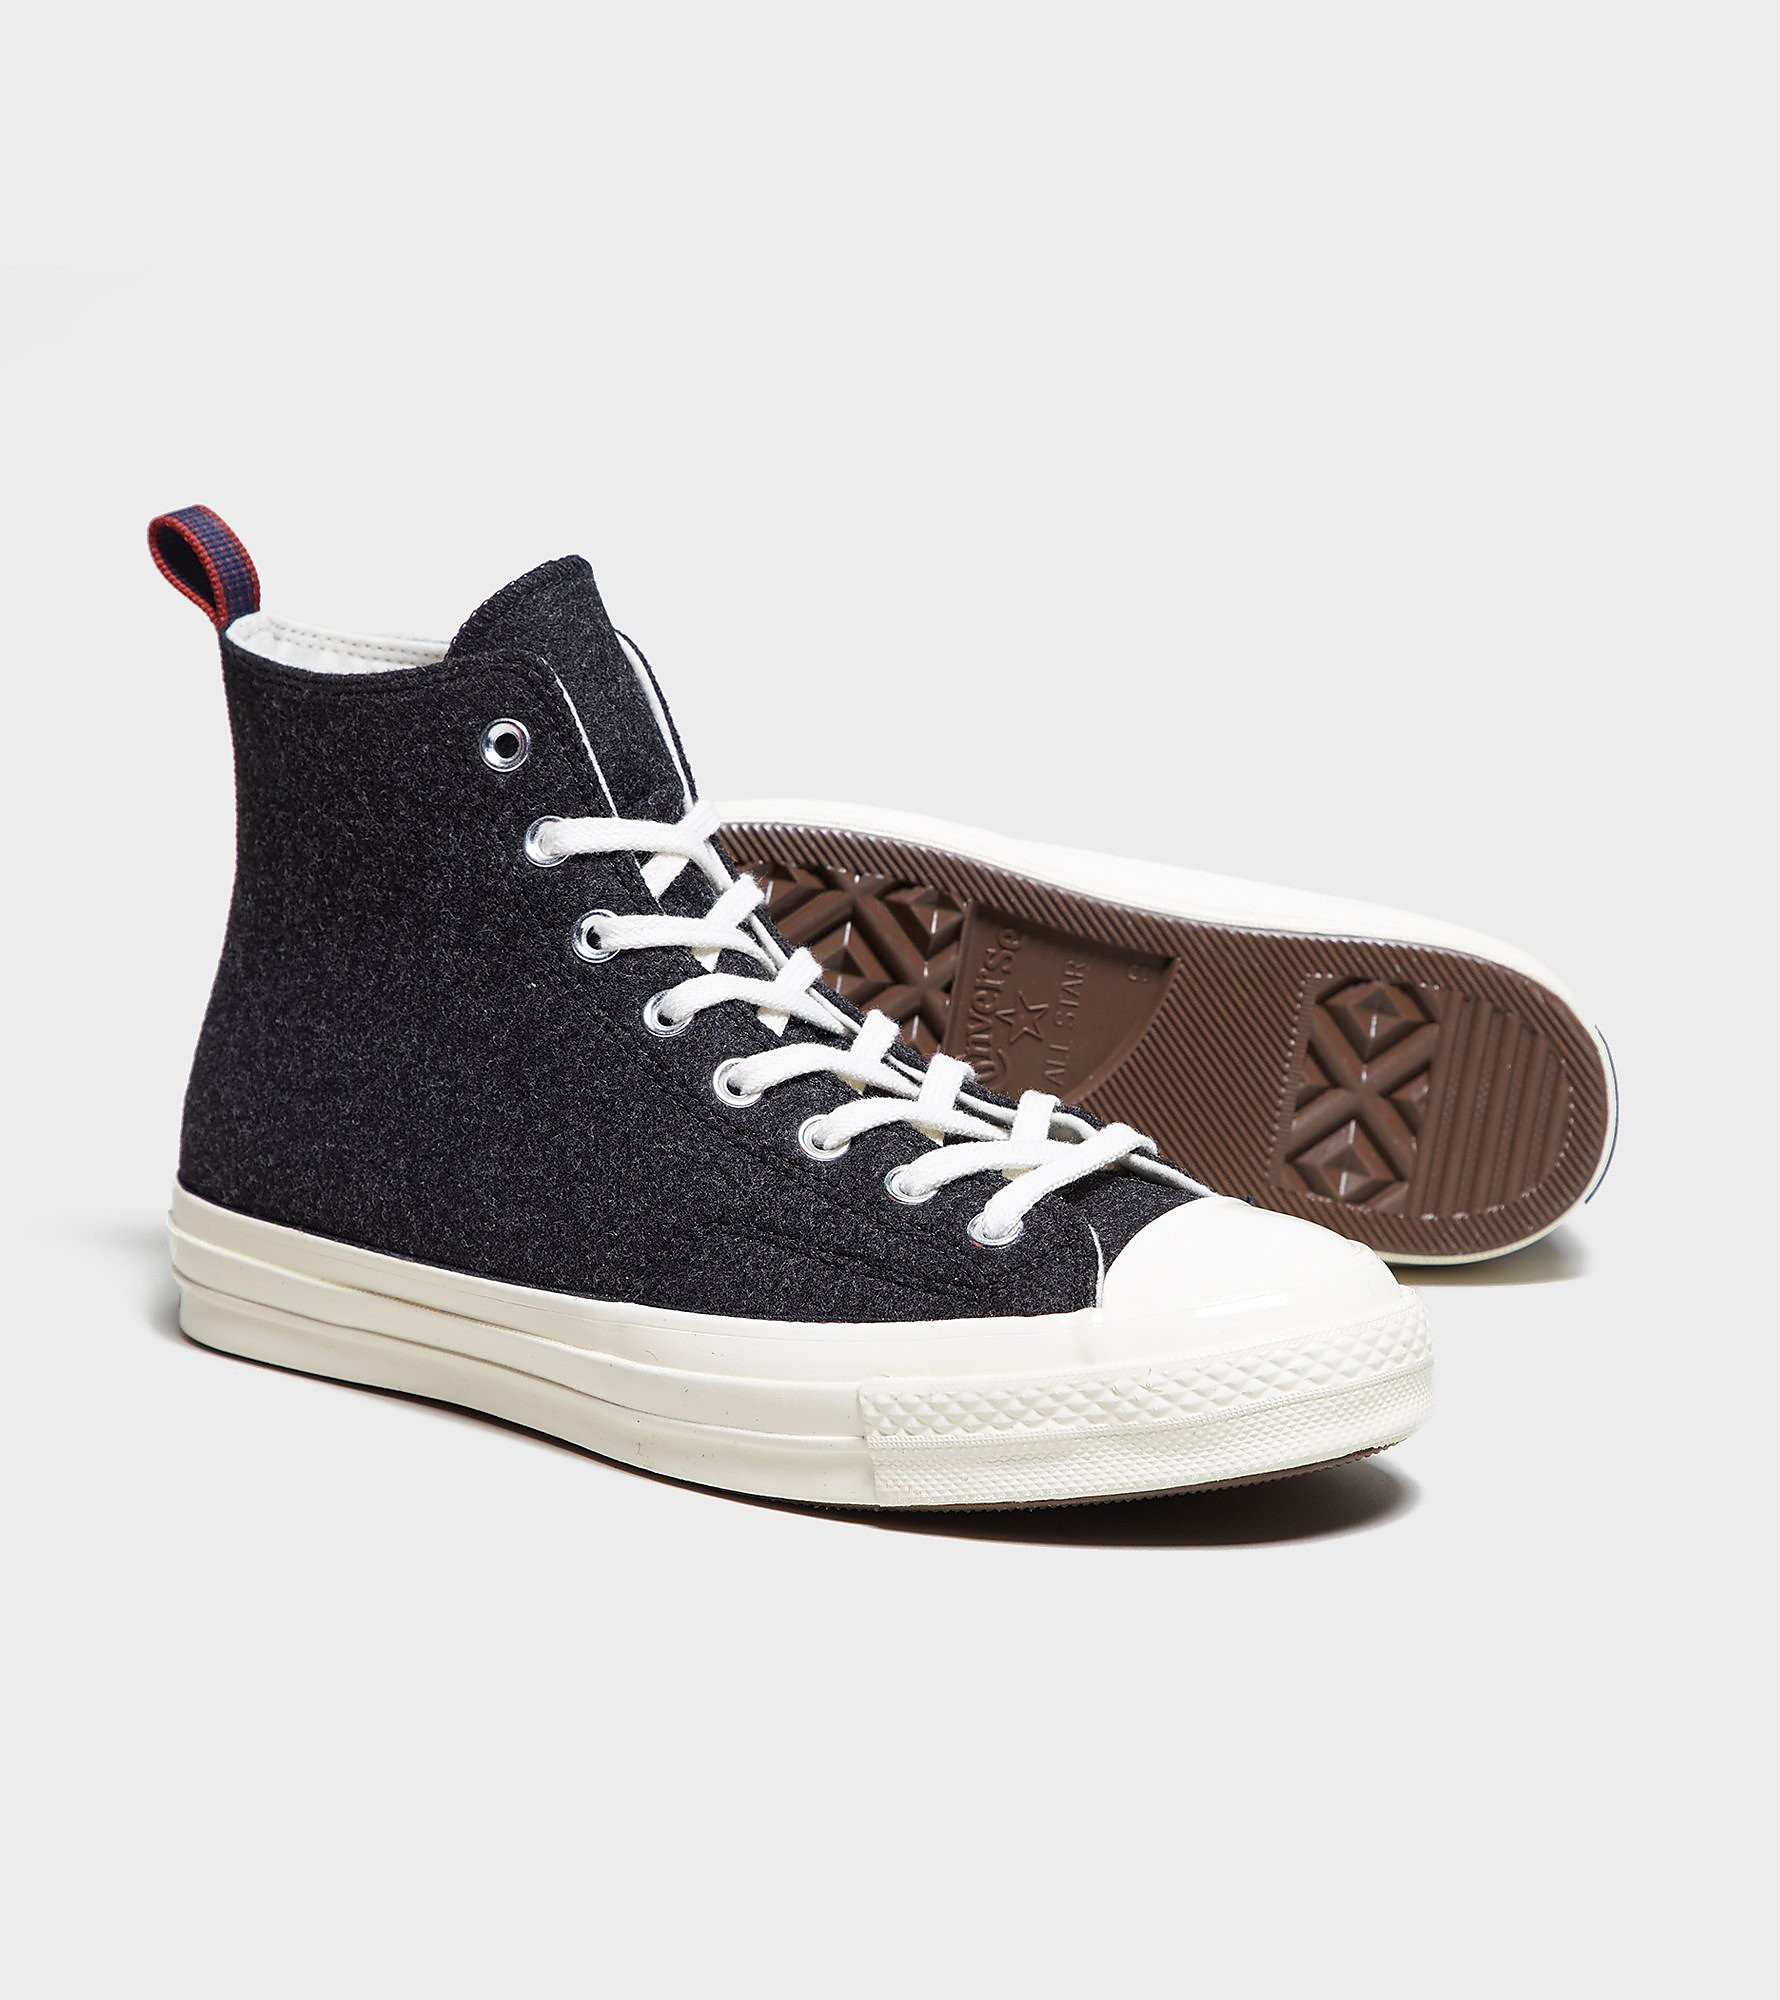 Converse All Star Hi 70's Wool